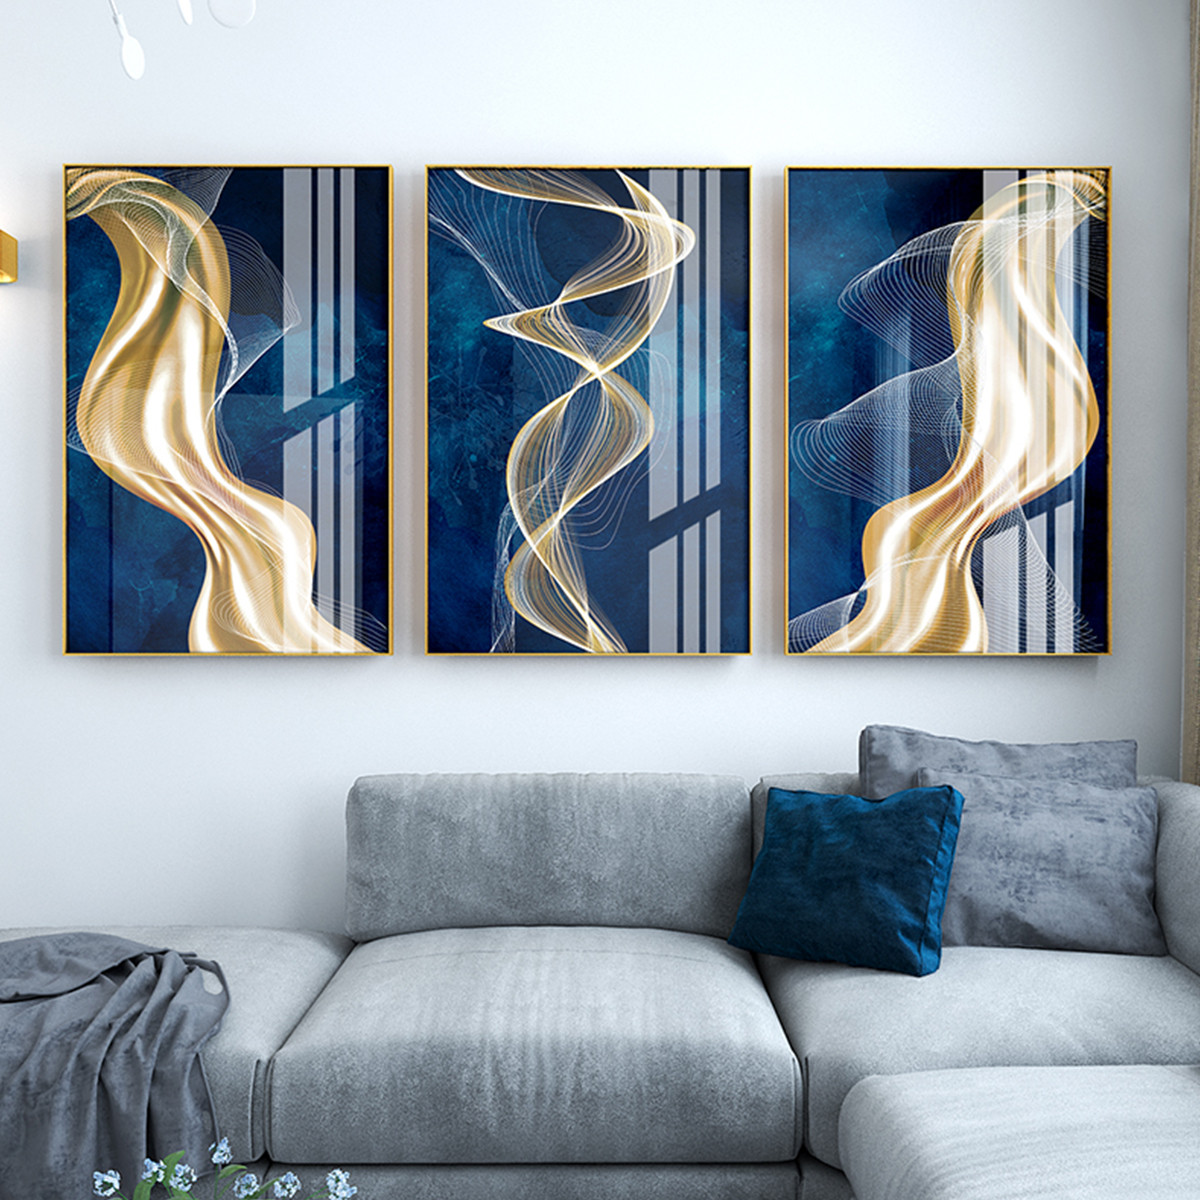 Living room modern abstract wall art deco <strong>pictures</strong>